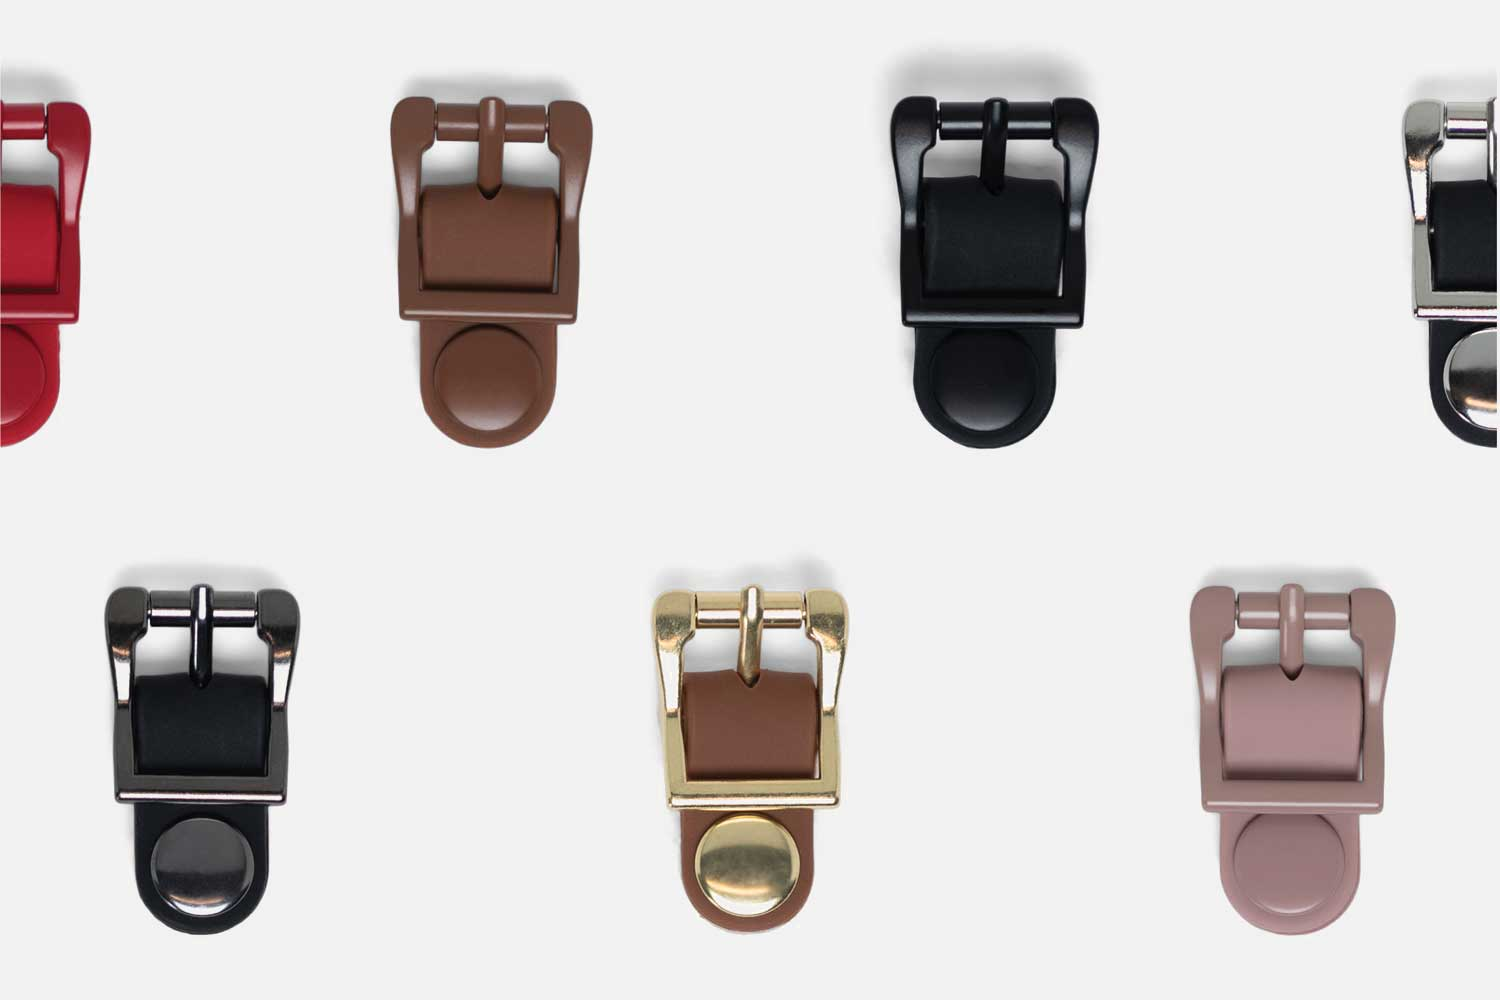 Finishing touches - Customize every strap and buckle